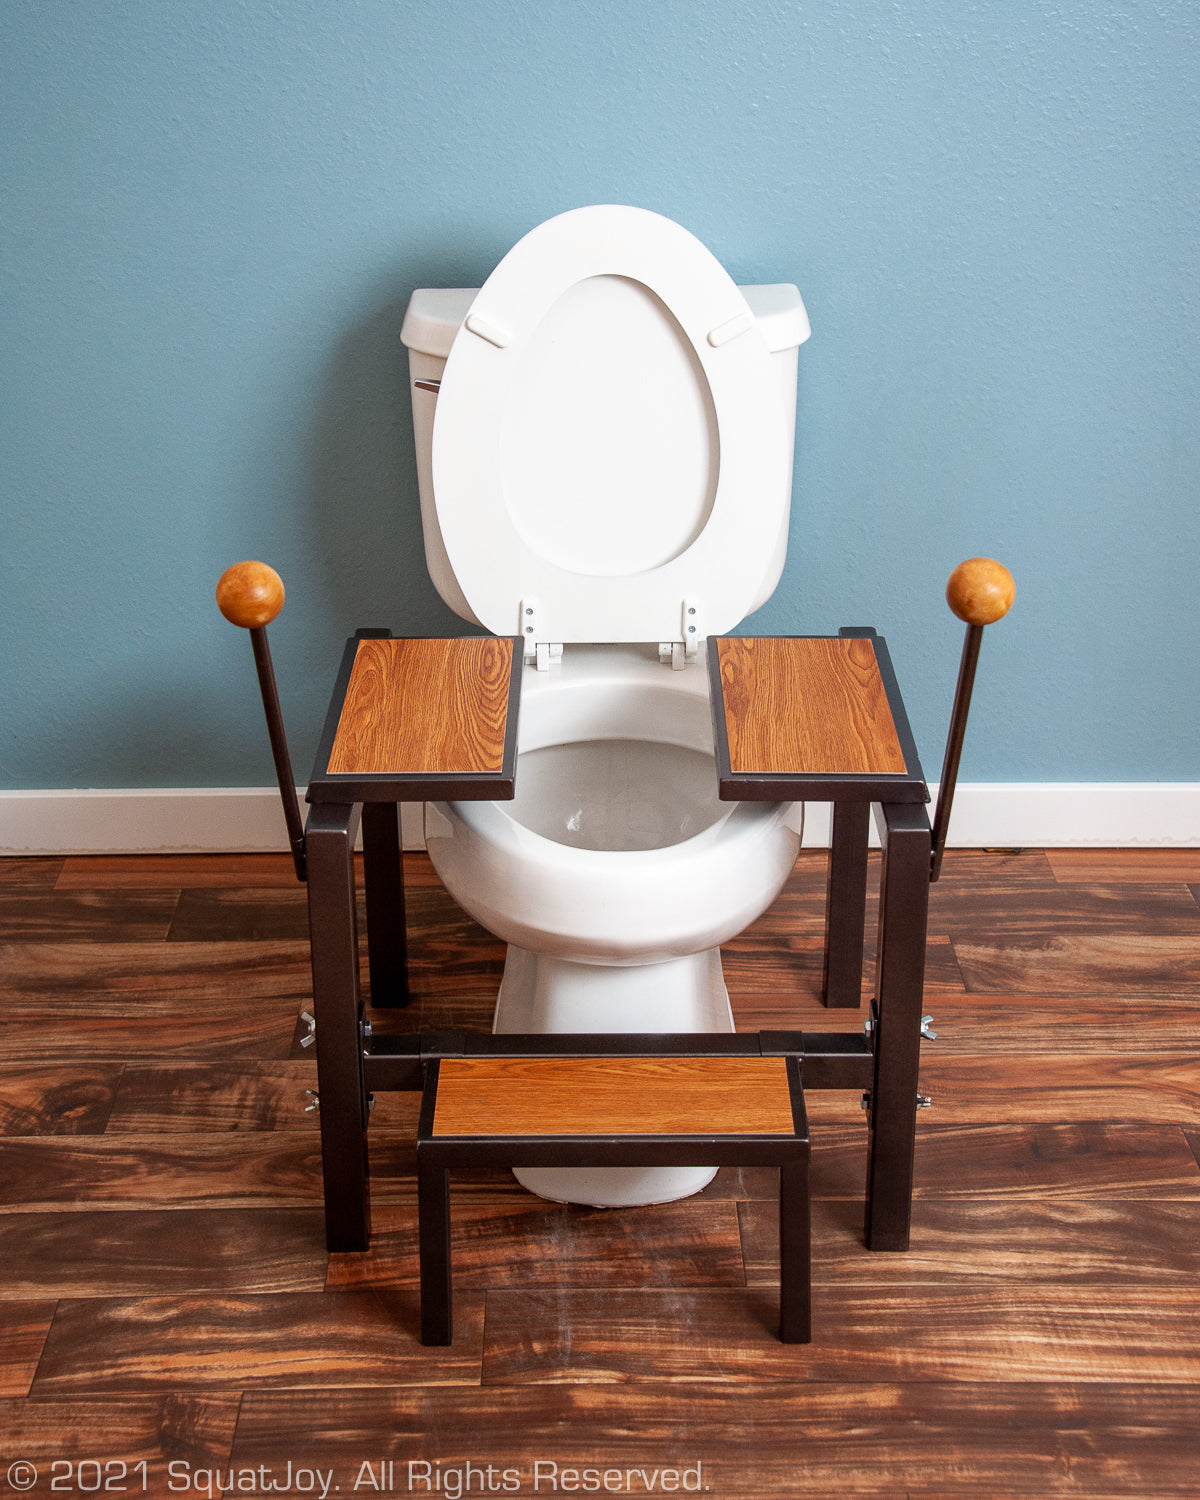 SquatJoy - Full Squat toilet